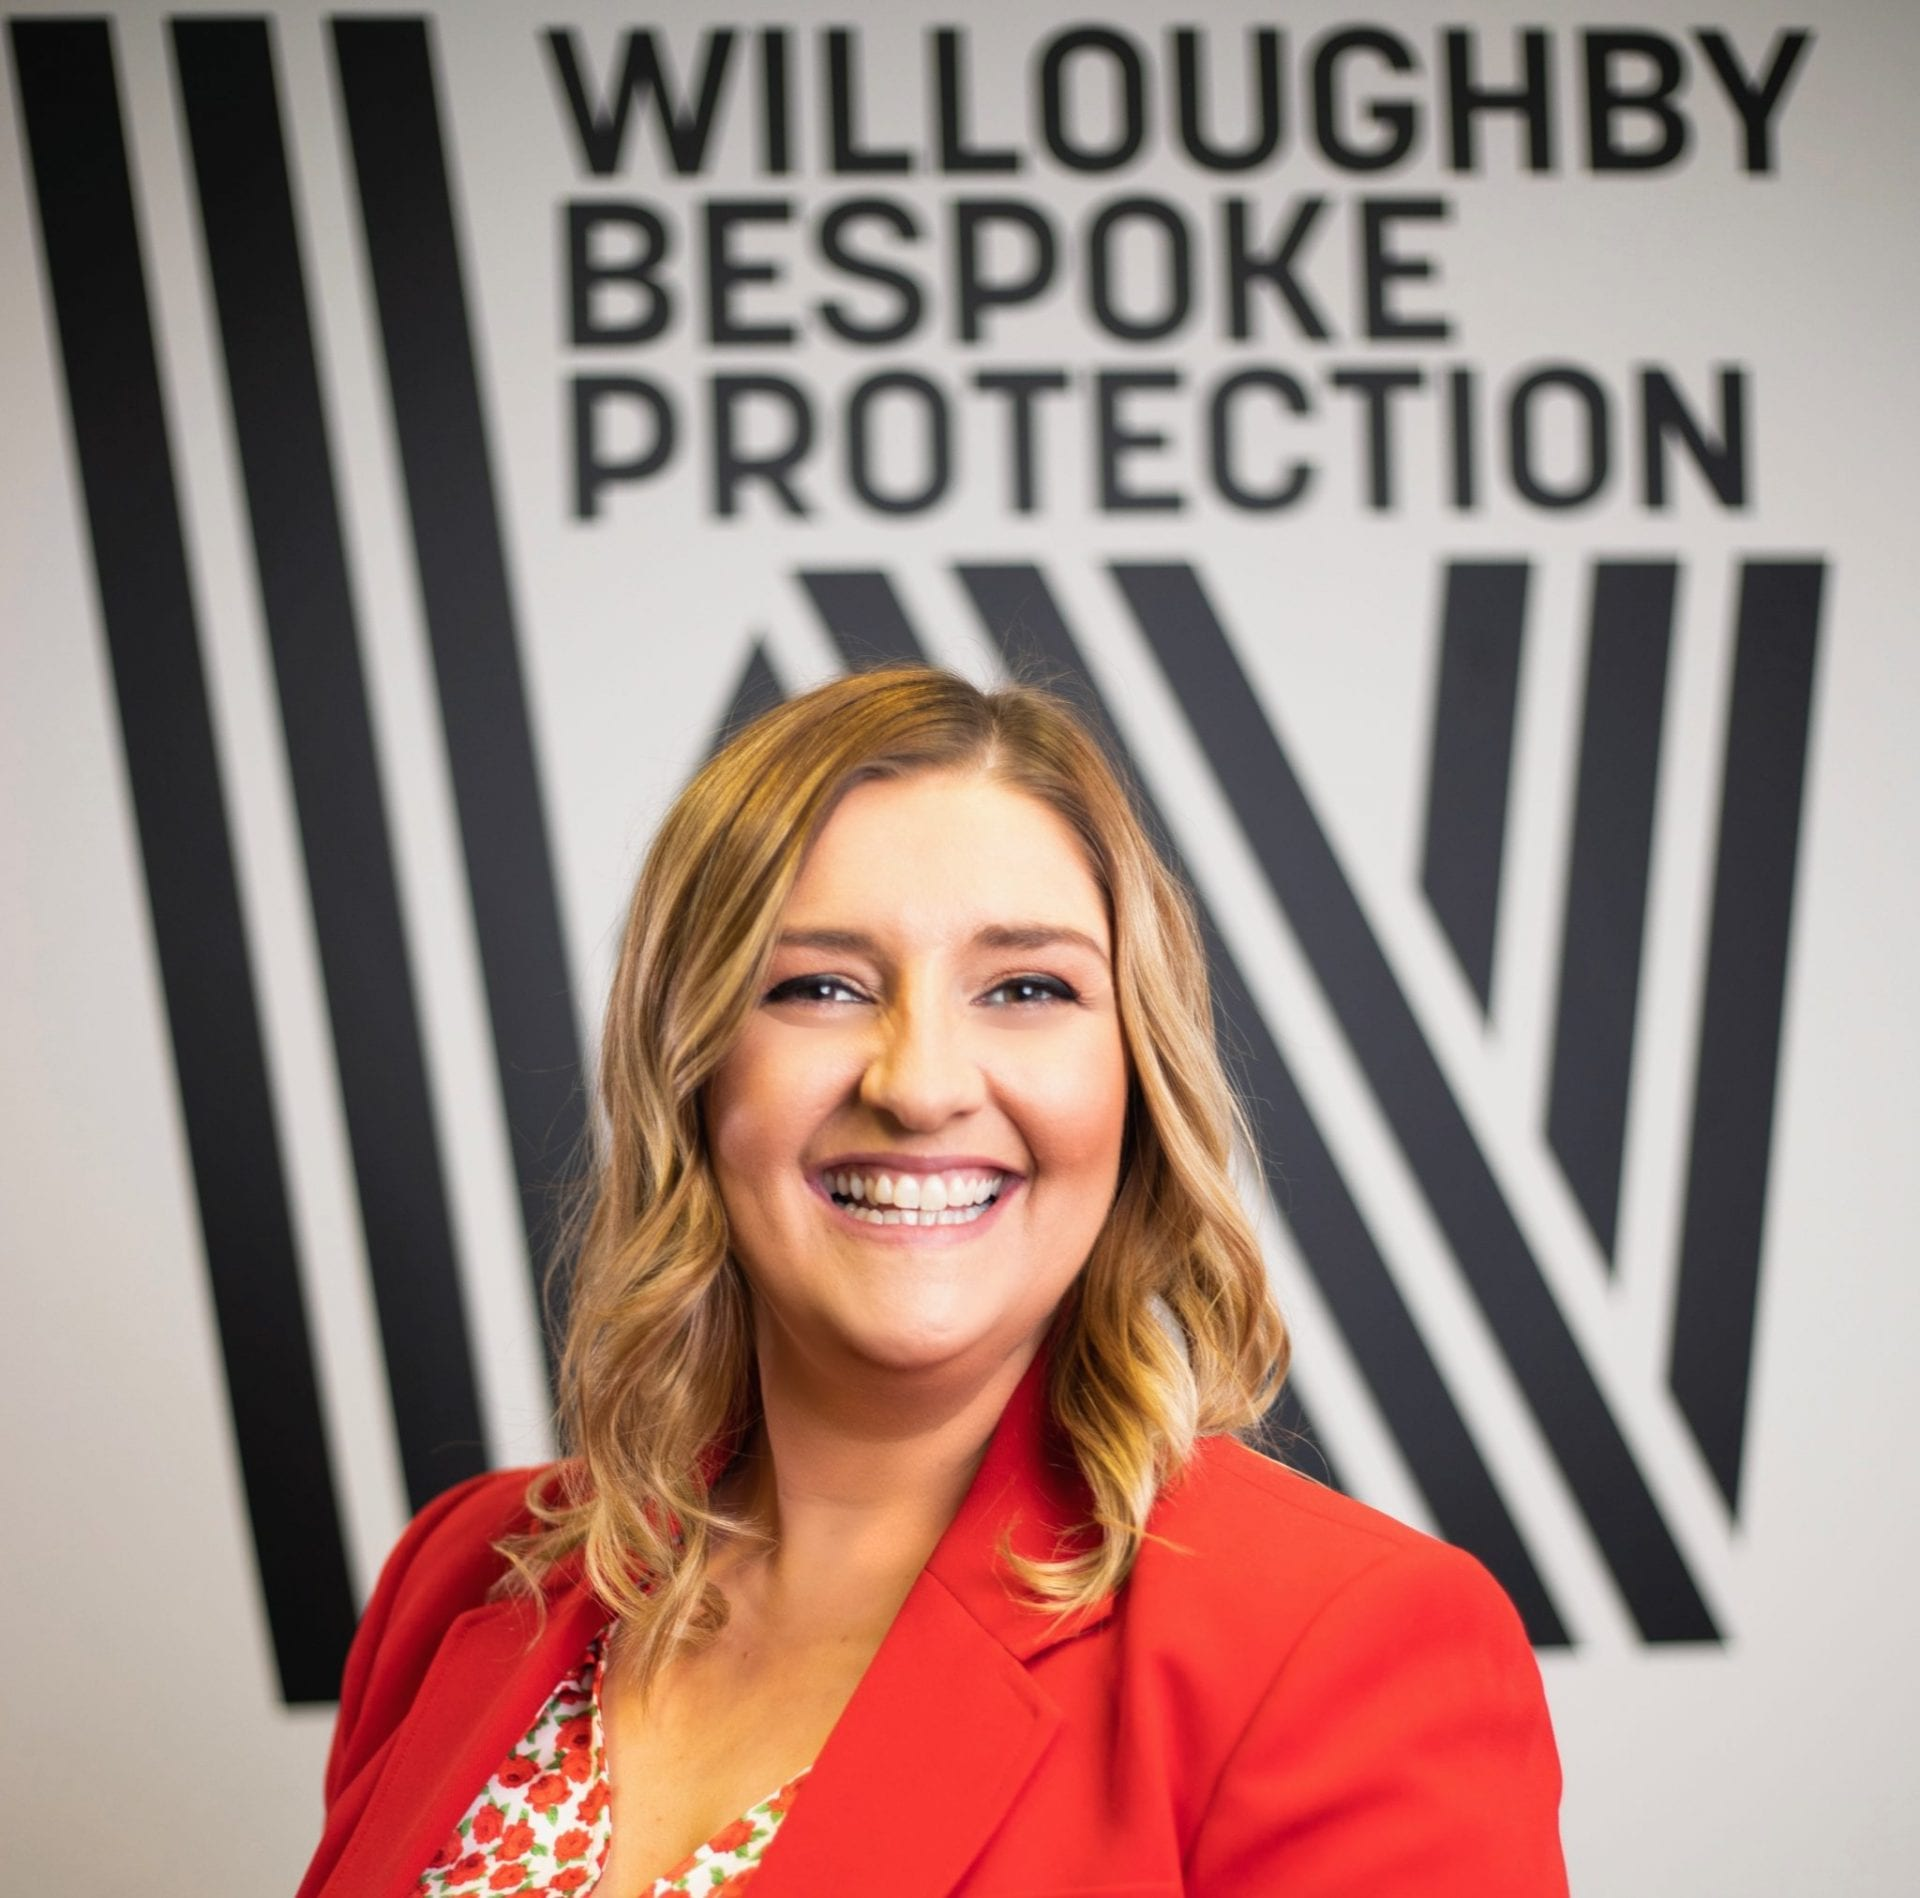 Willoughby Bespoke Protection